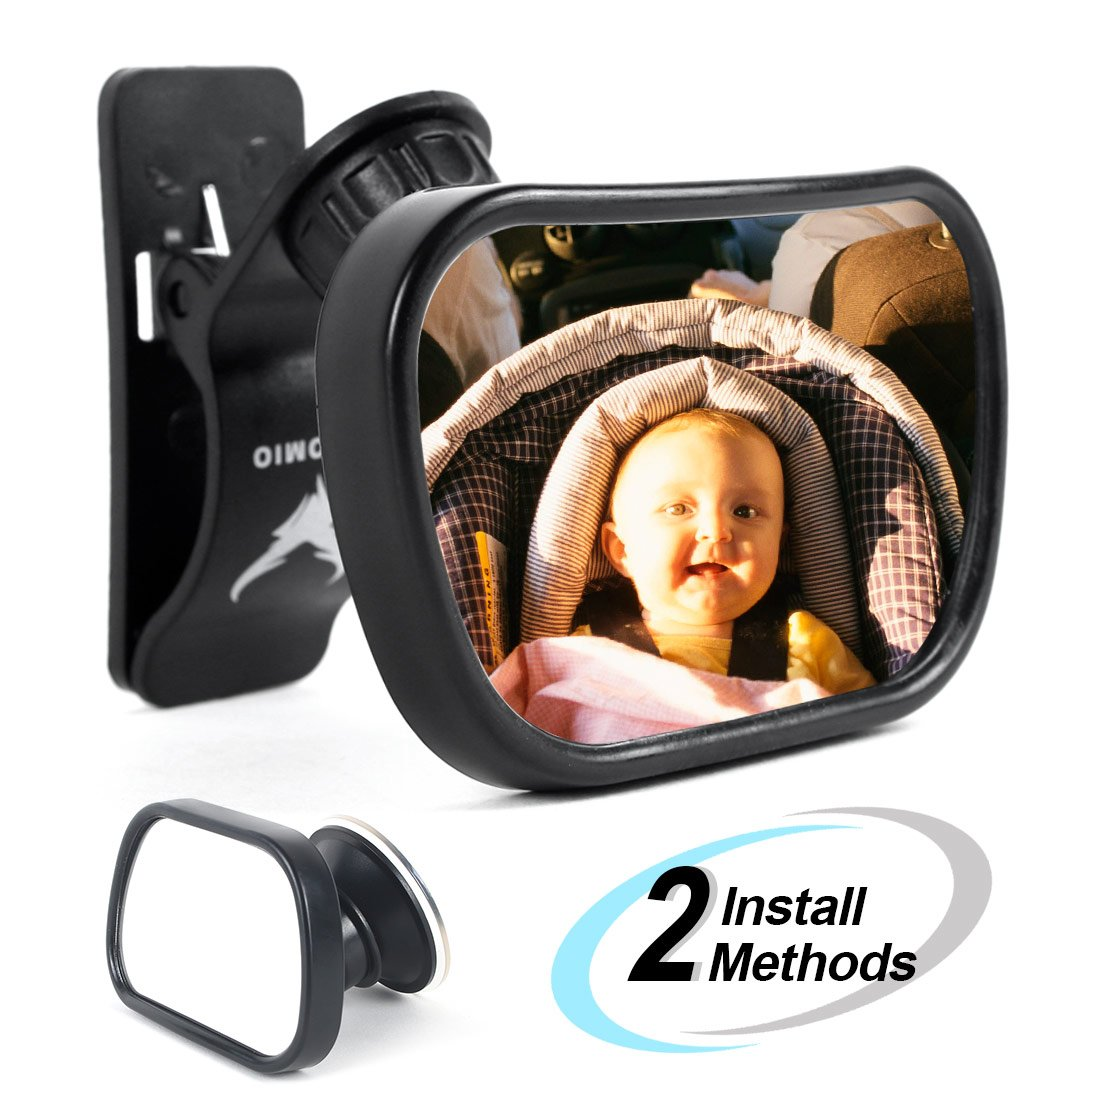 Baby Mirror Car Back Seat Mirror AOTOMIO Adjustable Rear View Convex and Shatterproof Material with Cleaning Cloth Automio